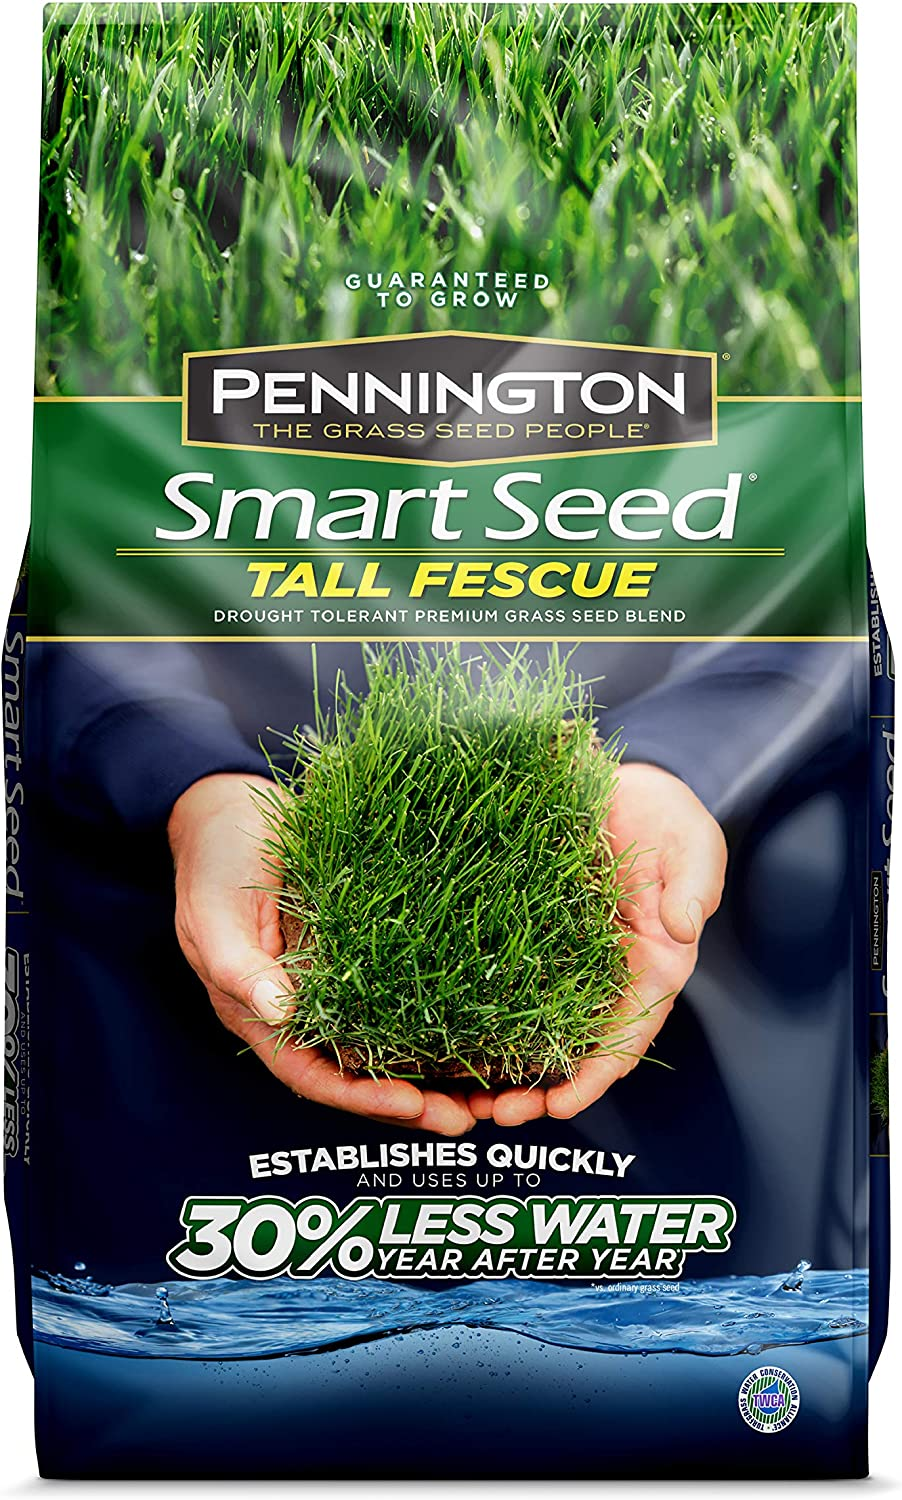 Pennington 100526677 Smart Tall Fescue Grass Seed, 7 lb, Old Version